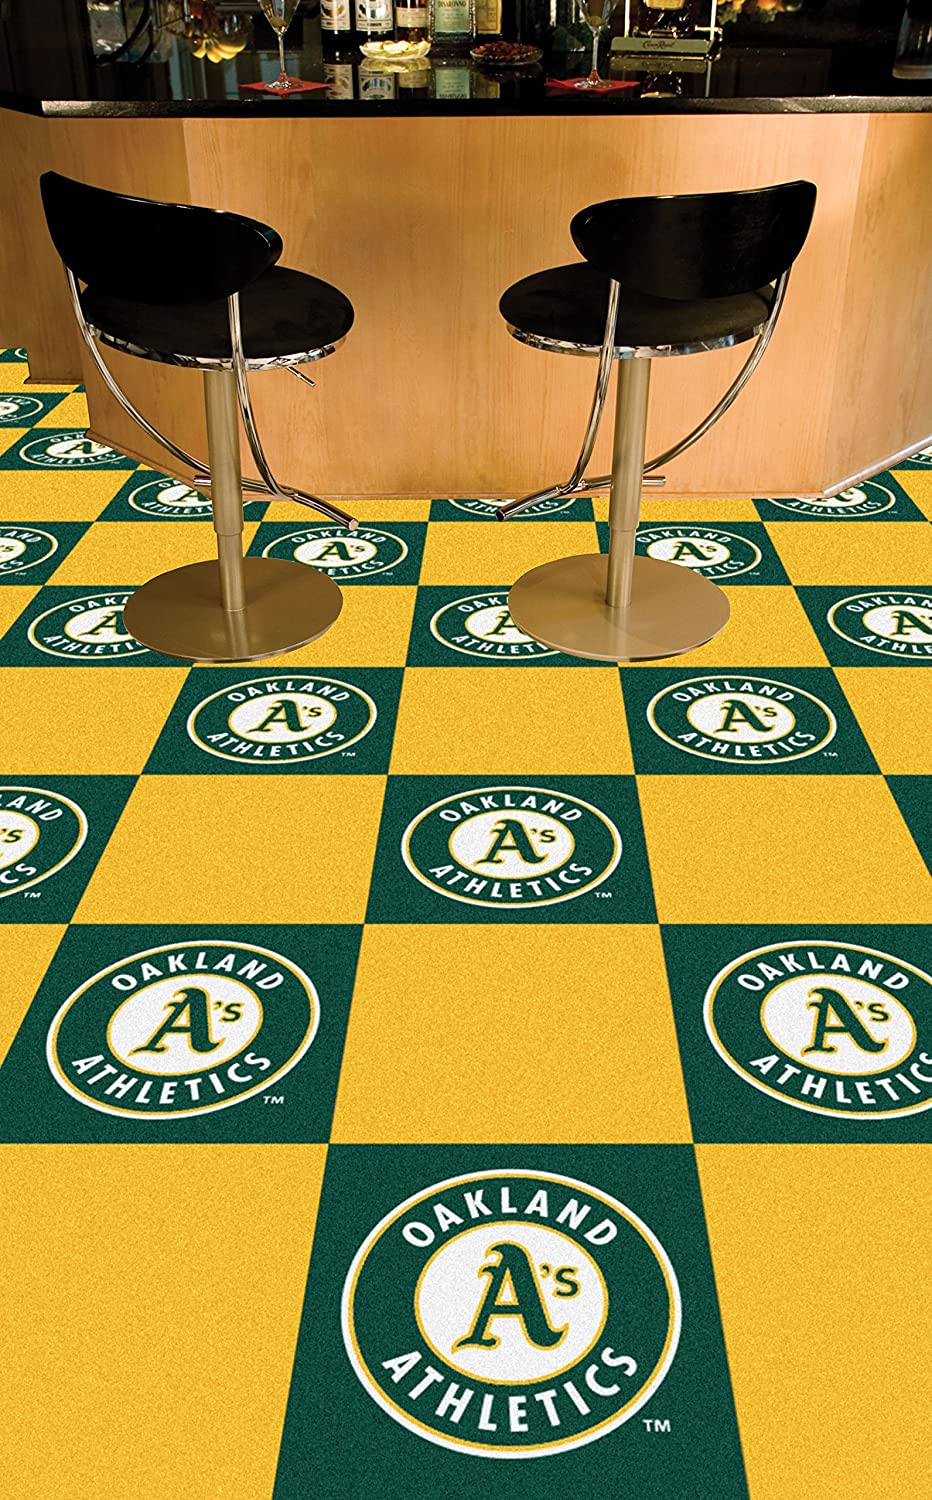 FANMATS MLB Oakland Athletics Nylon Face Team Carpet Tiles 8592